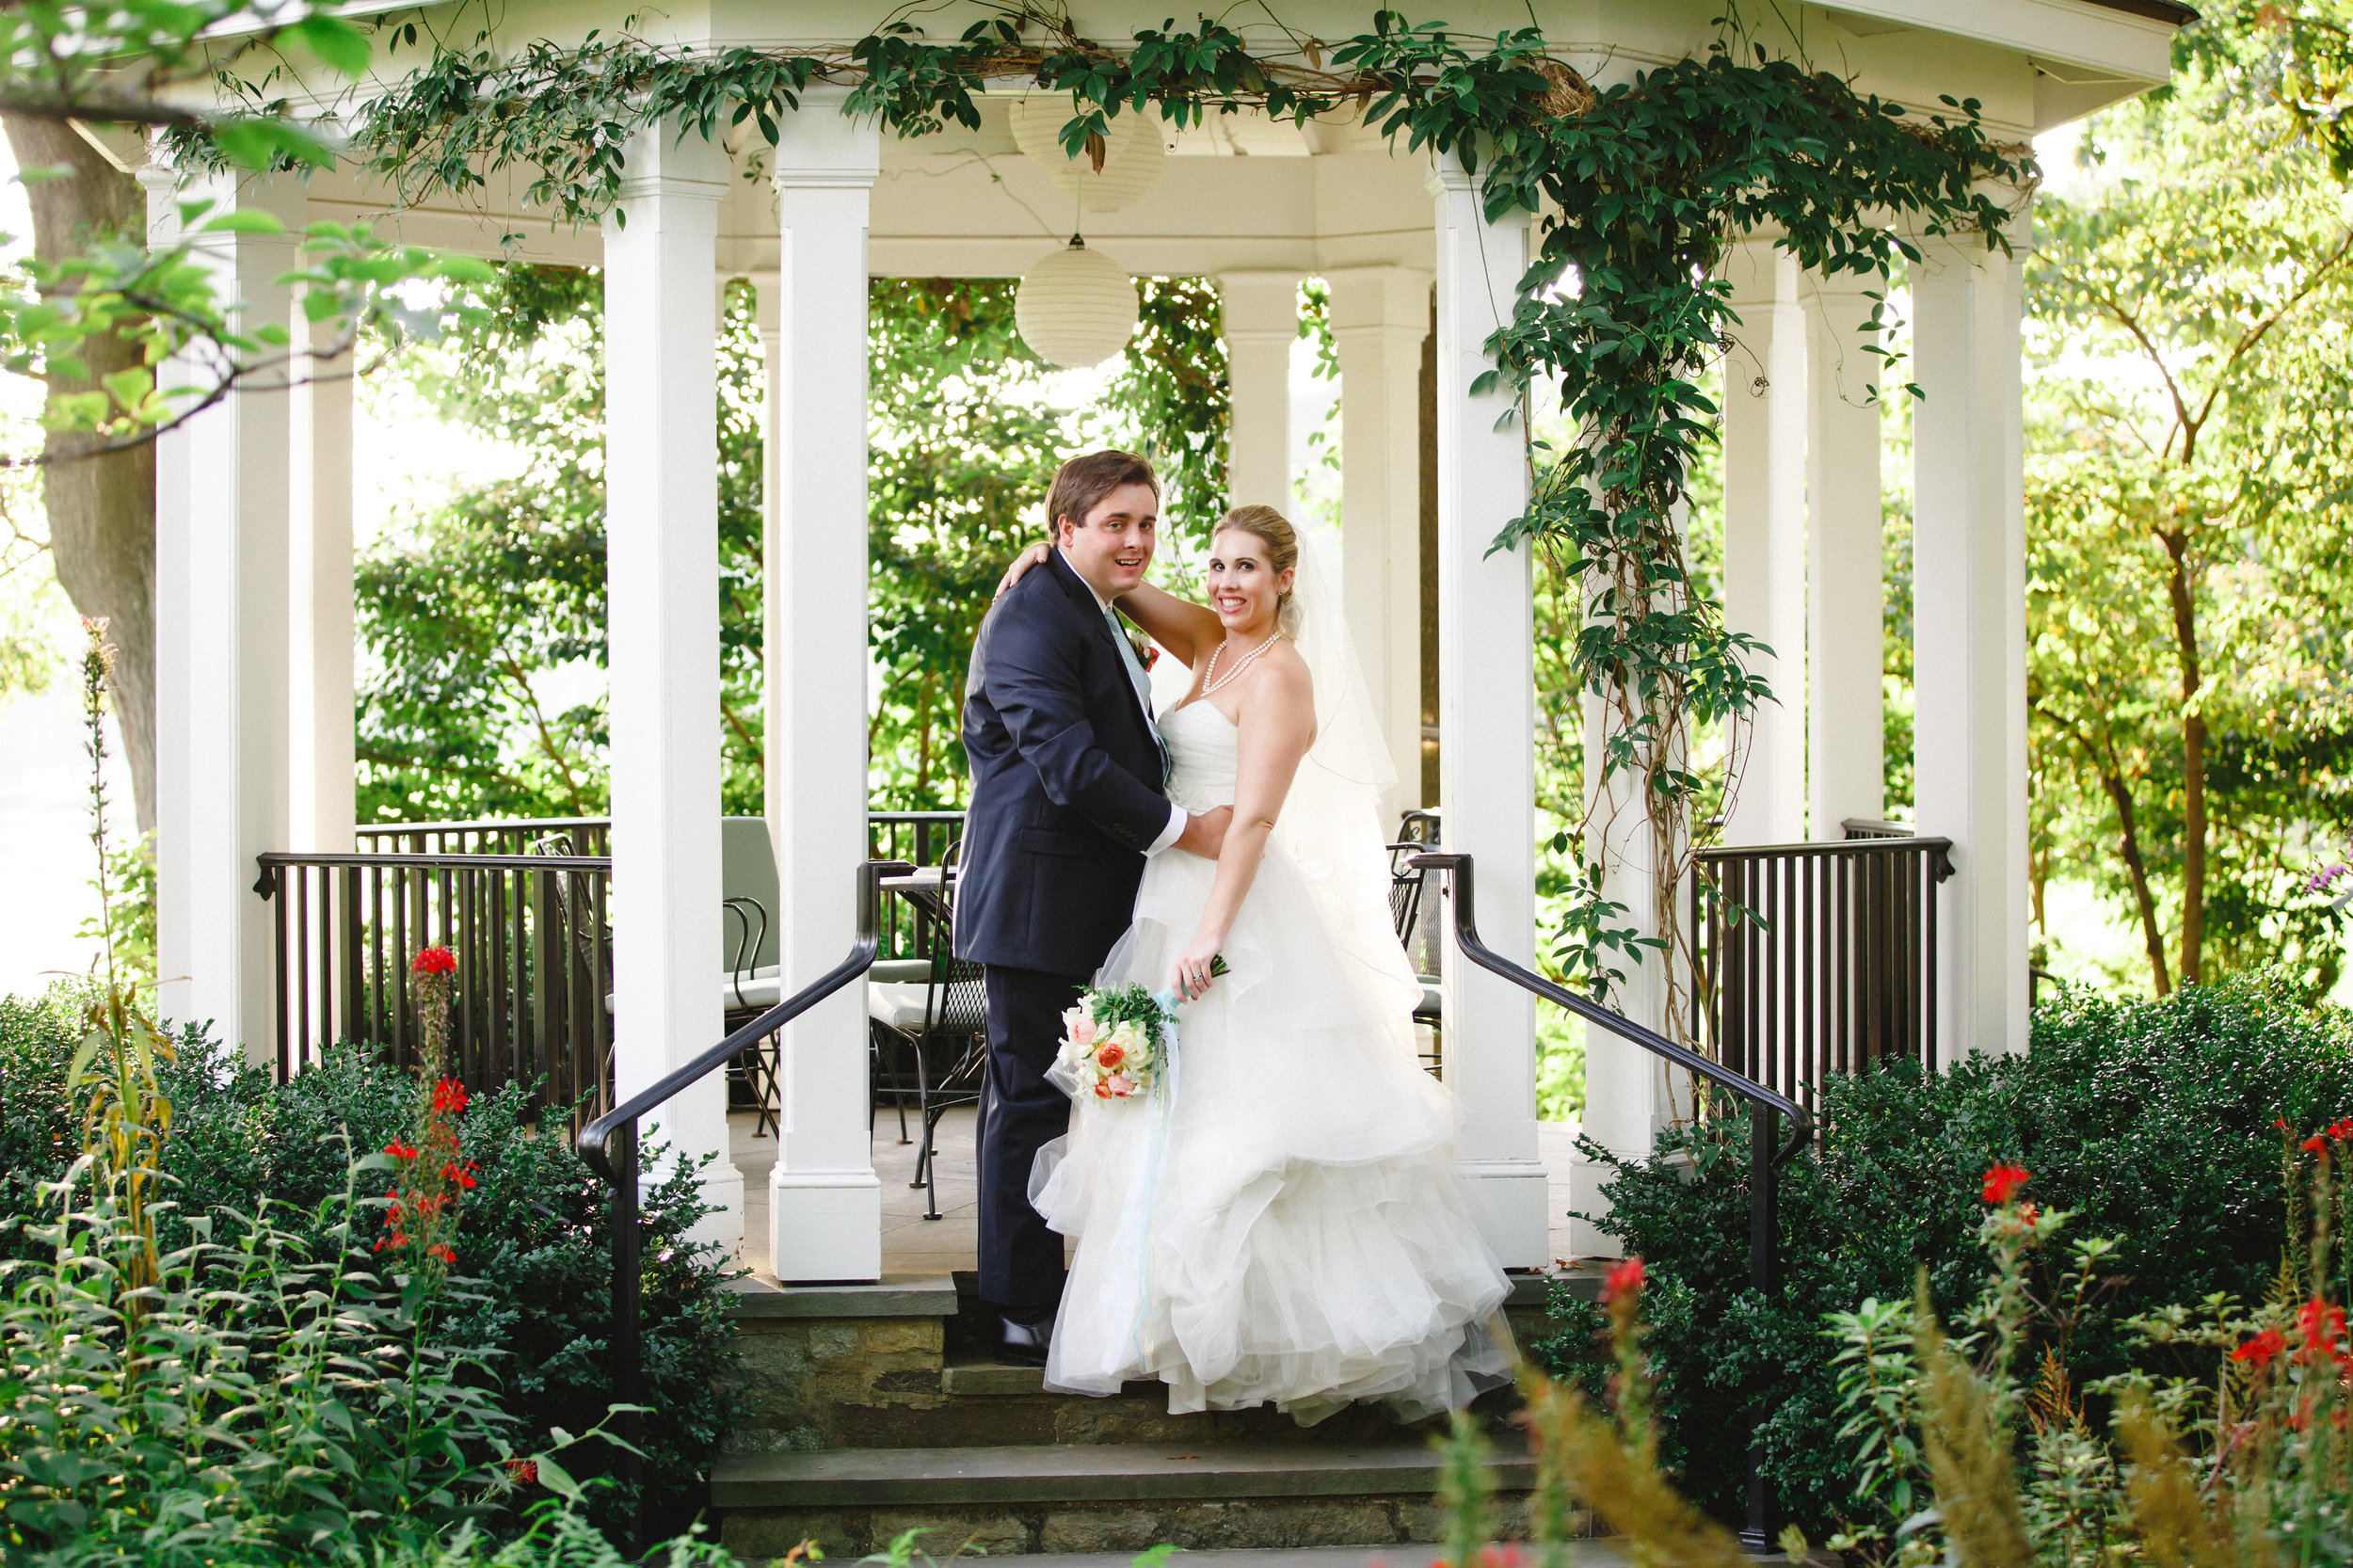 Vness-Photography-Chevy-Chase-Country-Club-A&R-Wedding-393.jpg